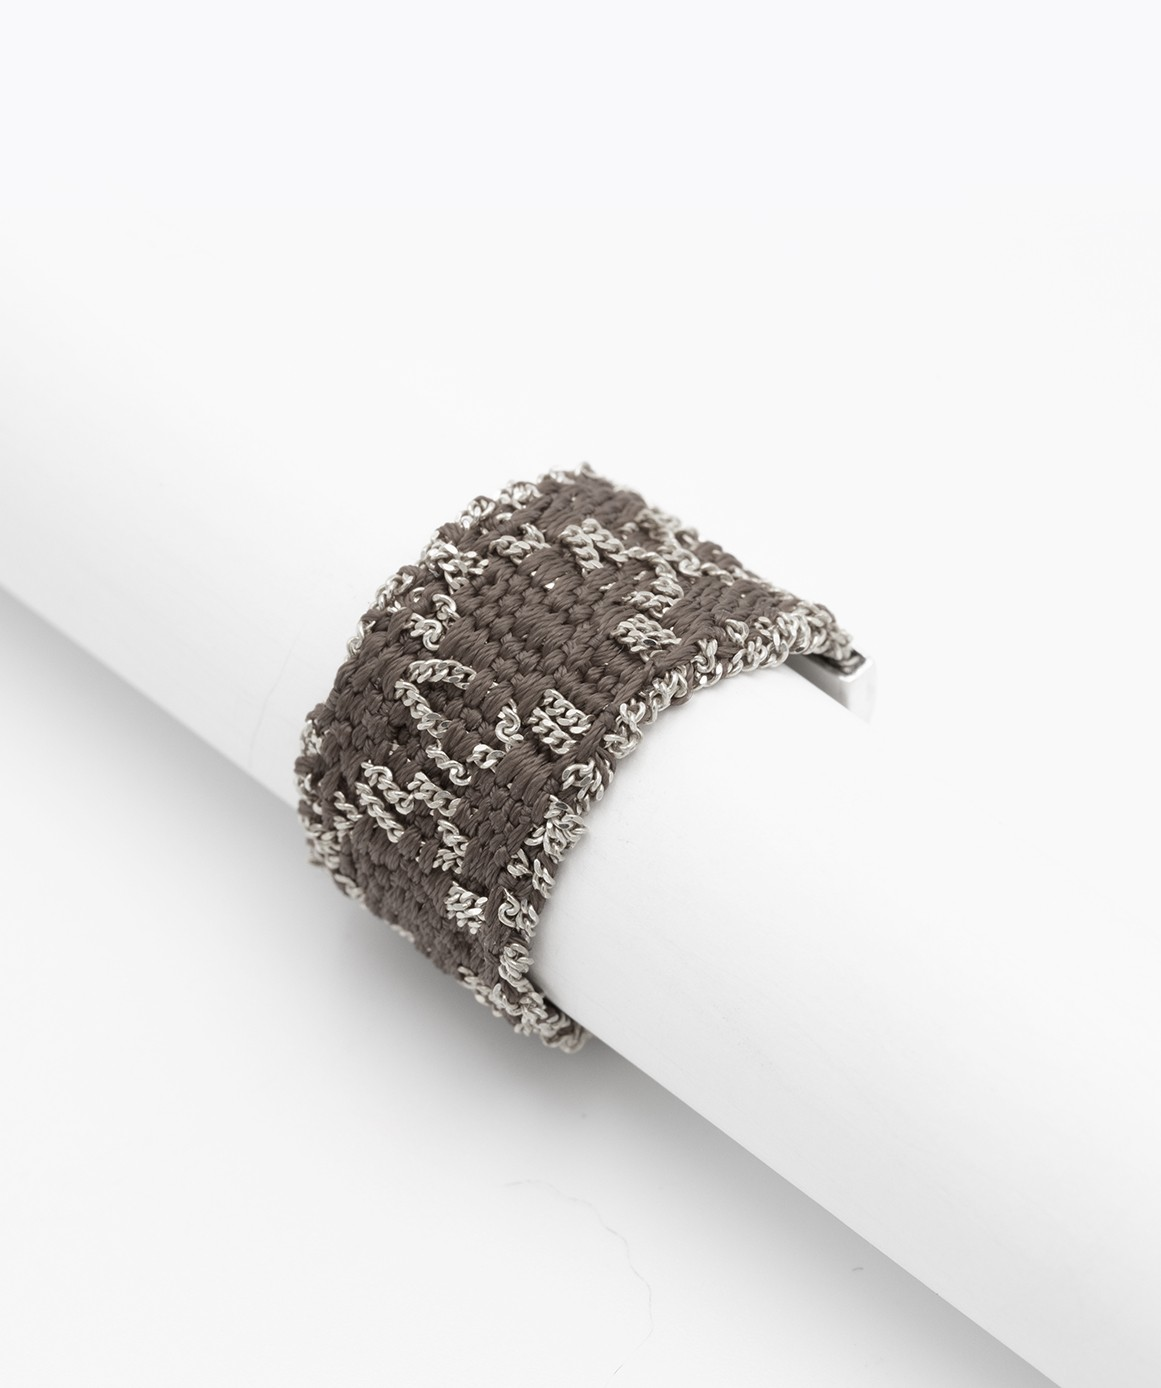 RHOMBUS Ring in Sterling Silver Rhodium plated. Fabric: Brown